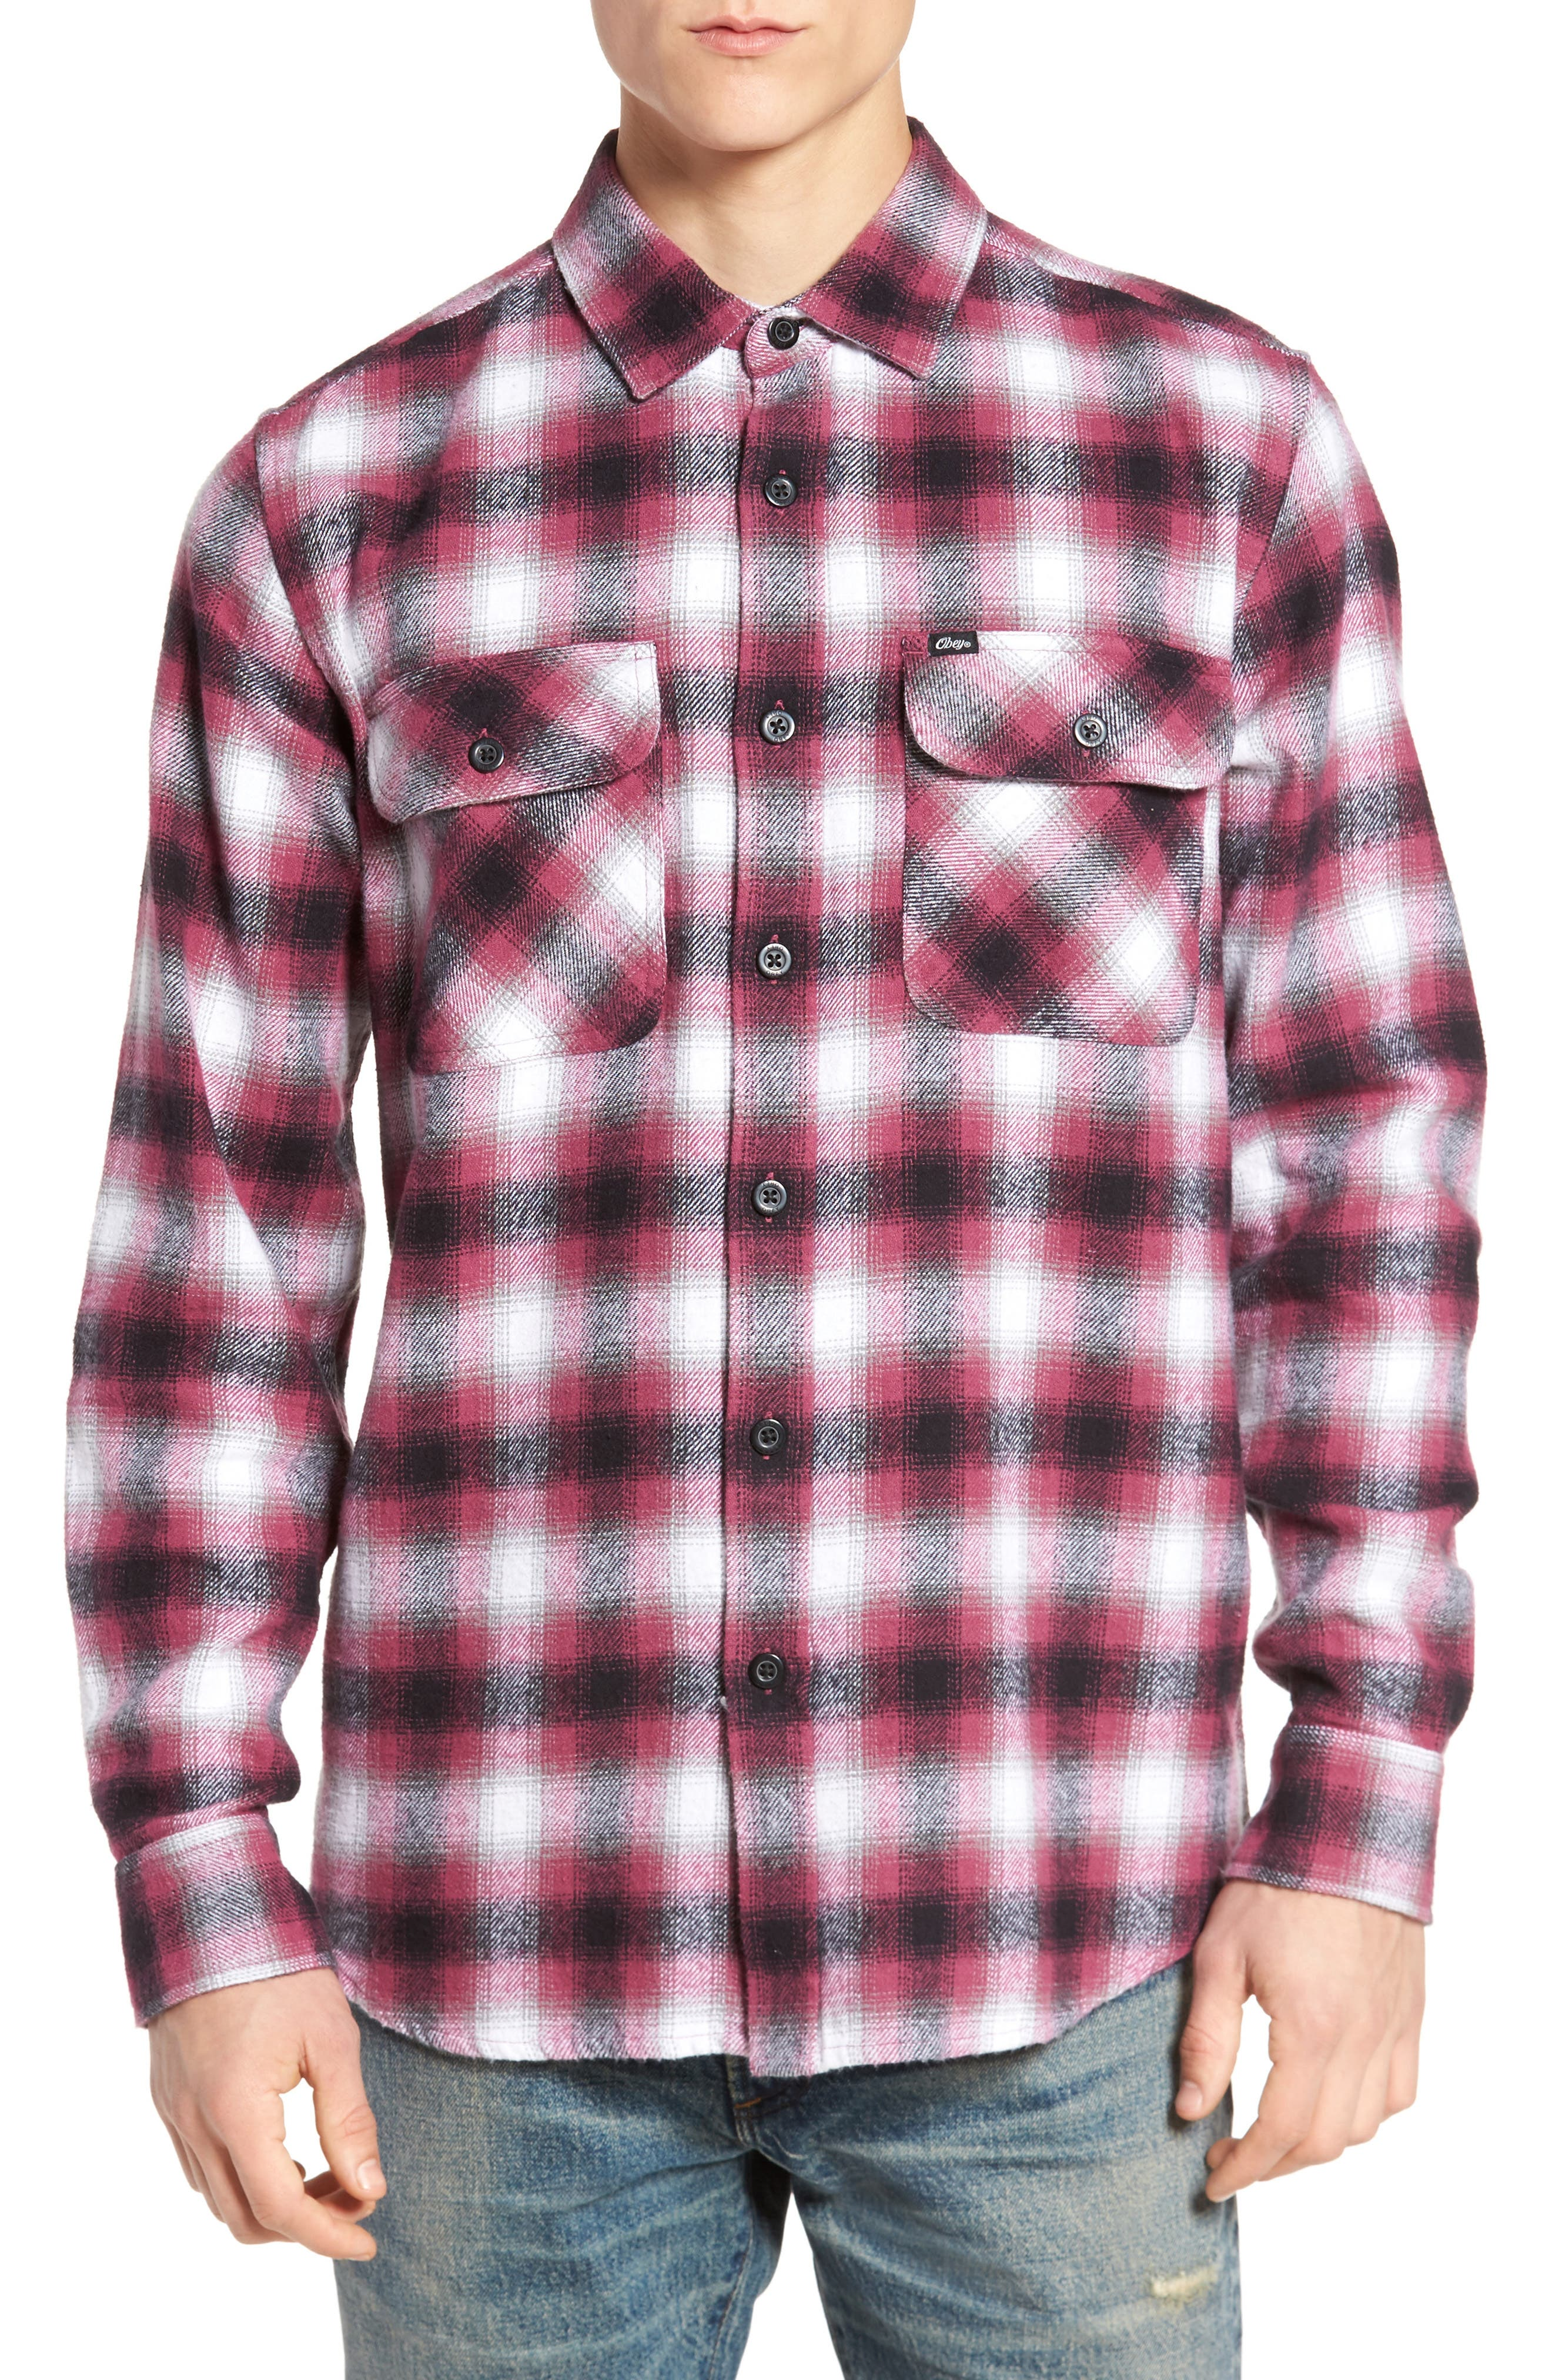 Alternate Image 1 Selected - Obey Mission Plaid Flannel Sport Shirt